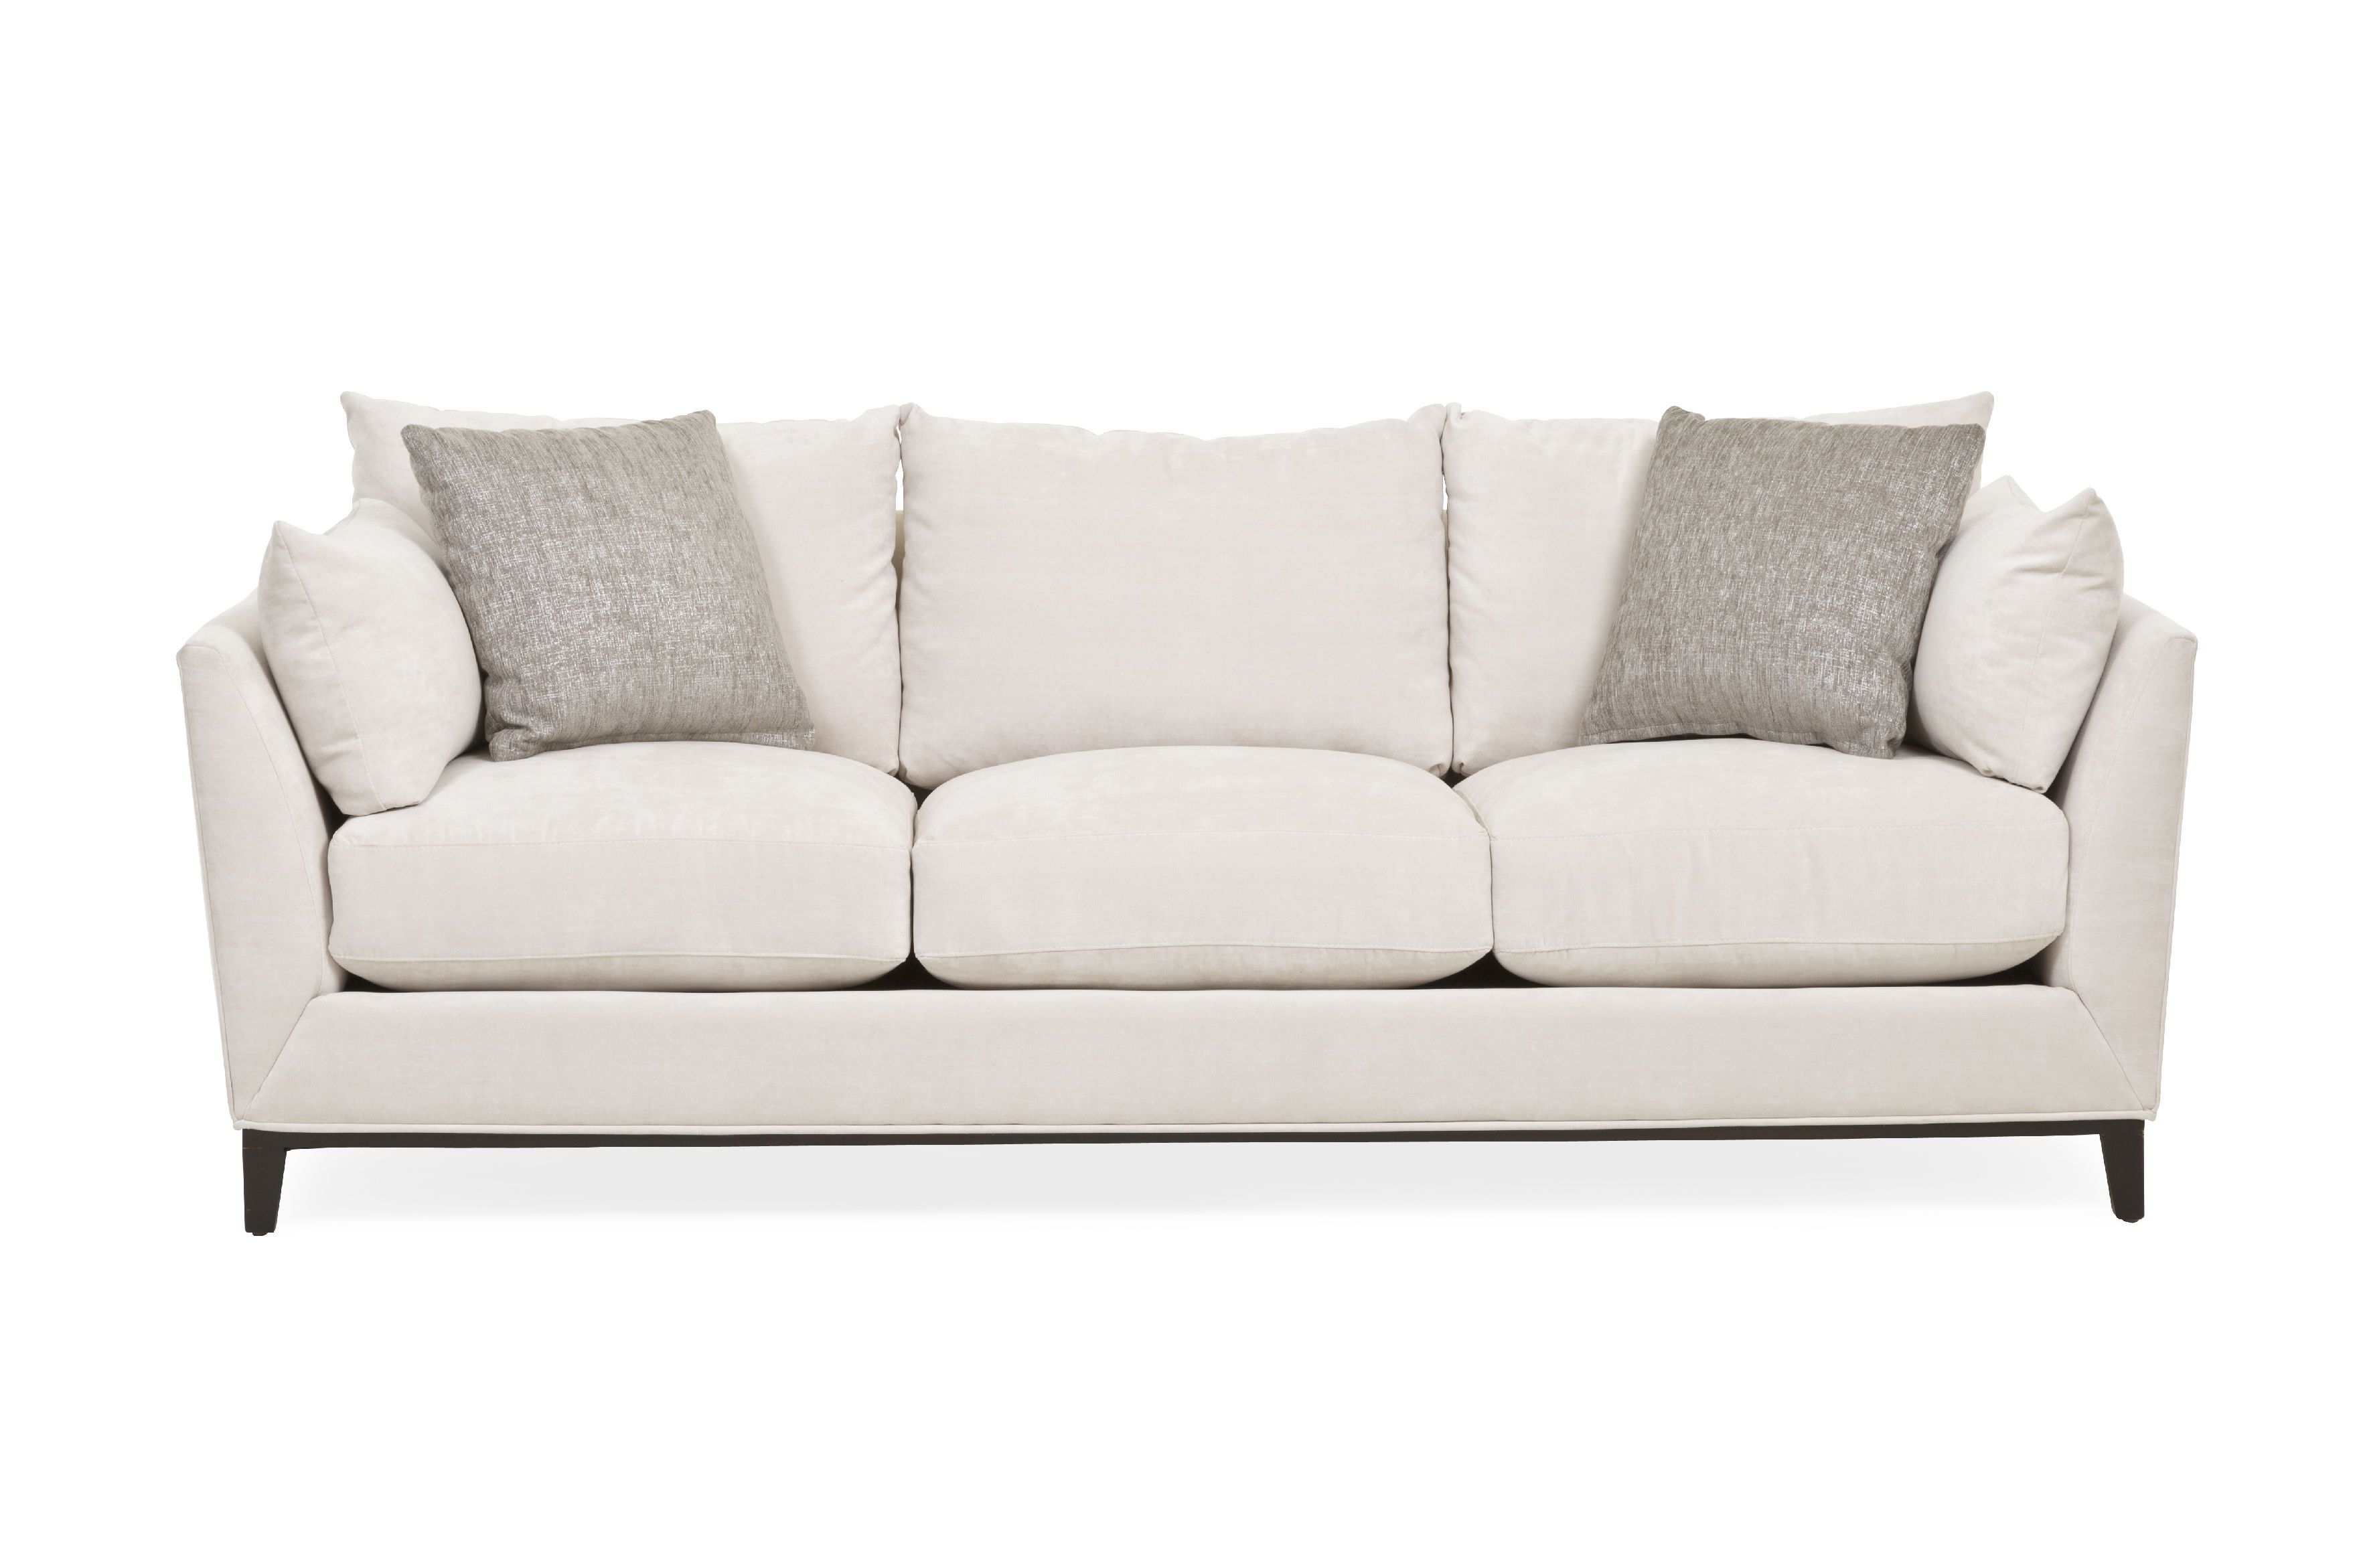 Metro Sofa St 423218 Star Furniture 940 Sofa